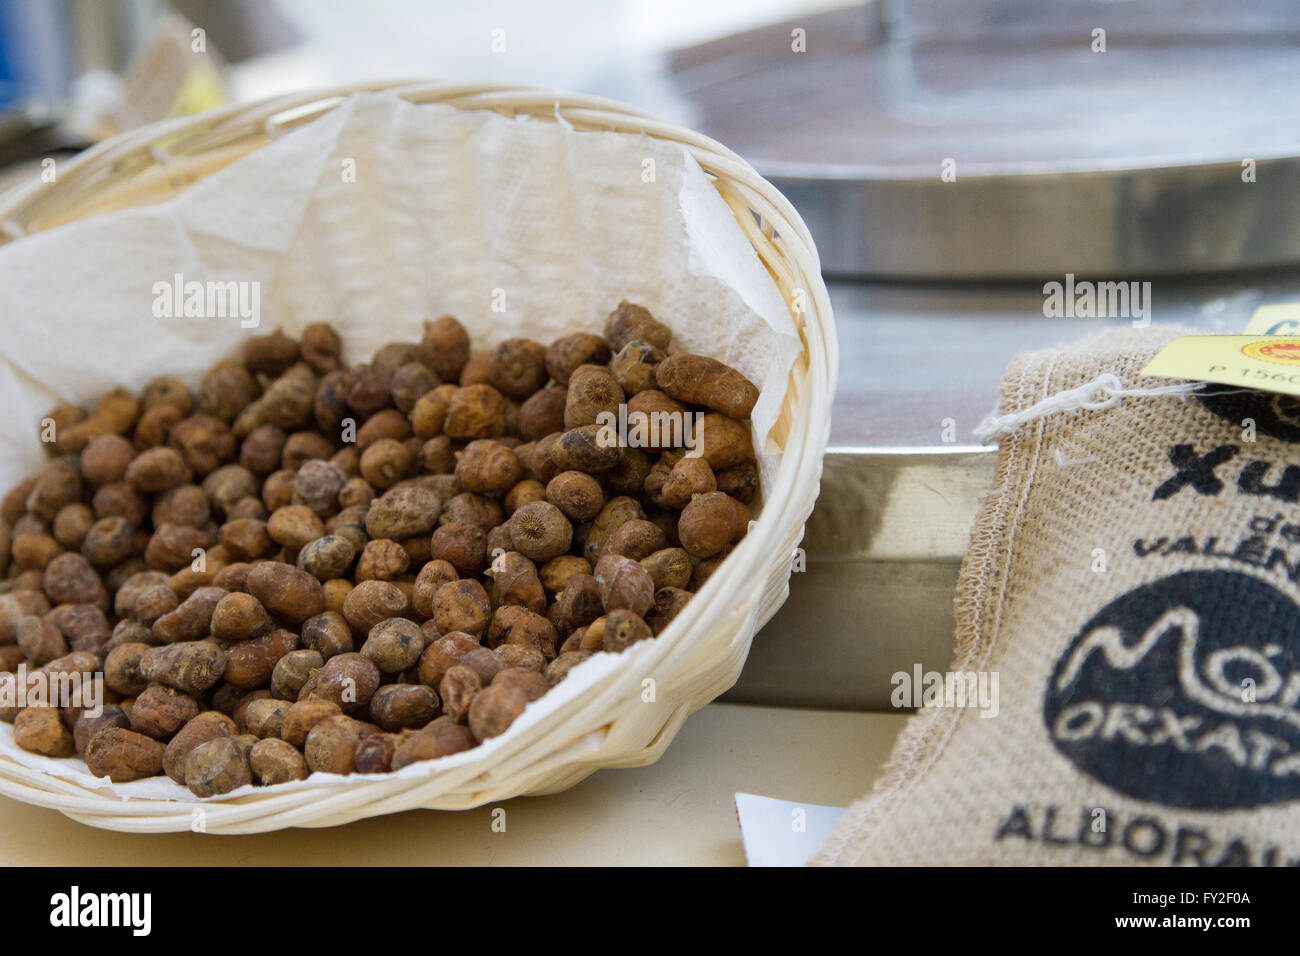 Horchata, tiger nuts of Valencia Spain - Stock Image